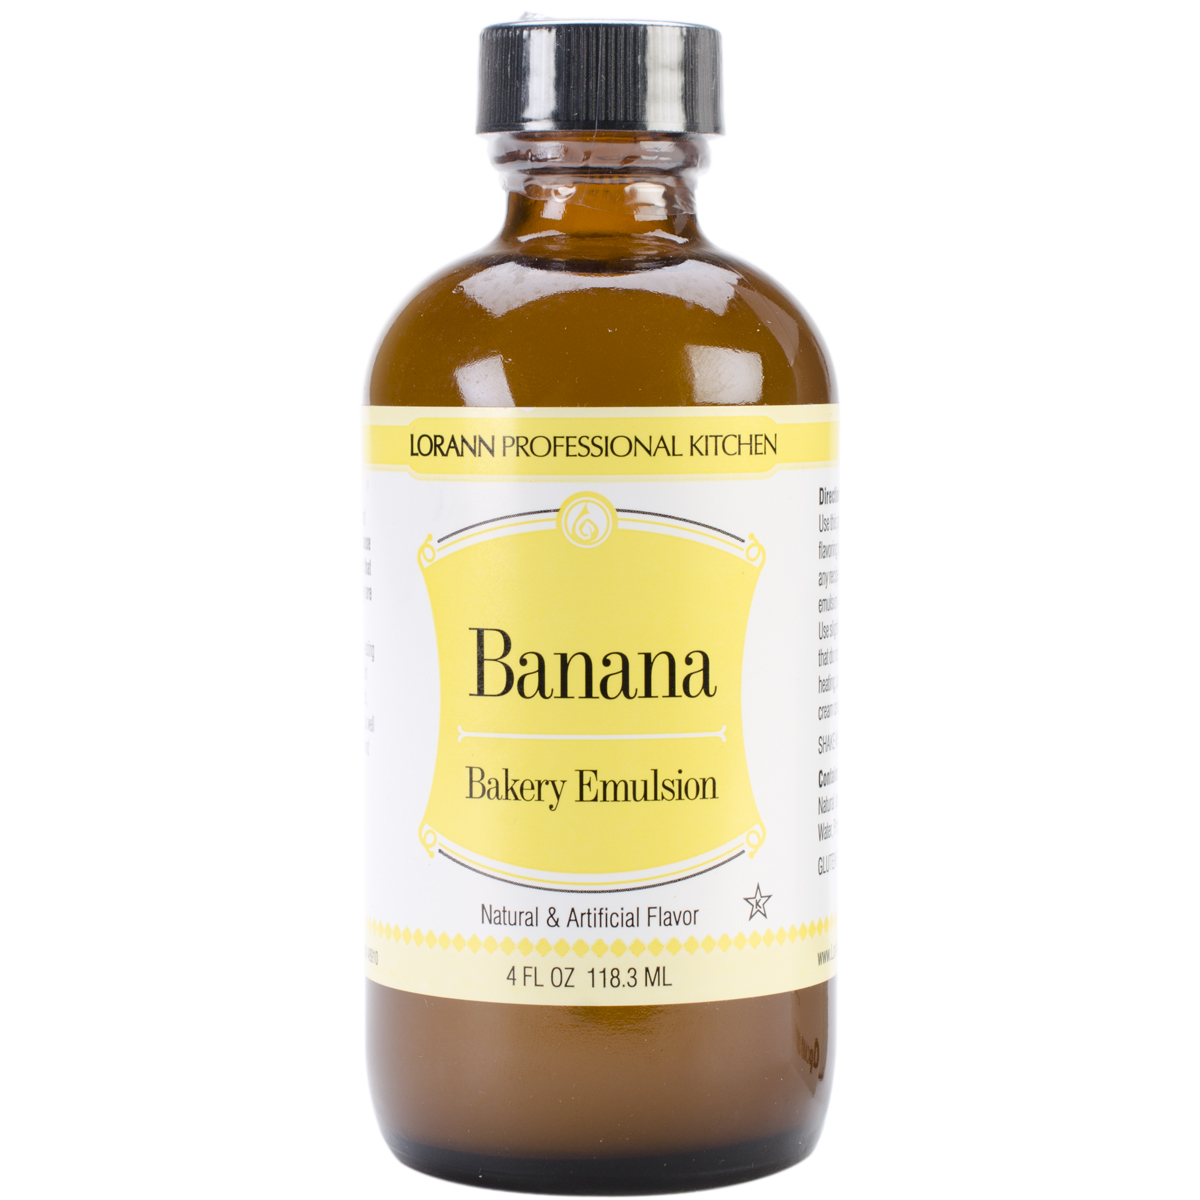 Lorann Oils Bakery Emulsions Natural & Artificial Flavor Banana                      Lorann Oils Bakery Emulsions Natural & Artificial Flavor Banana by Lorann Oils